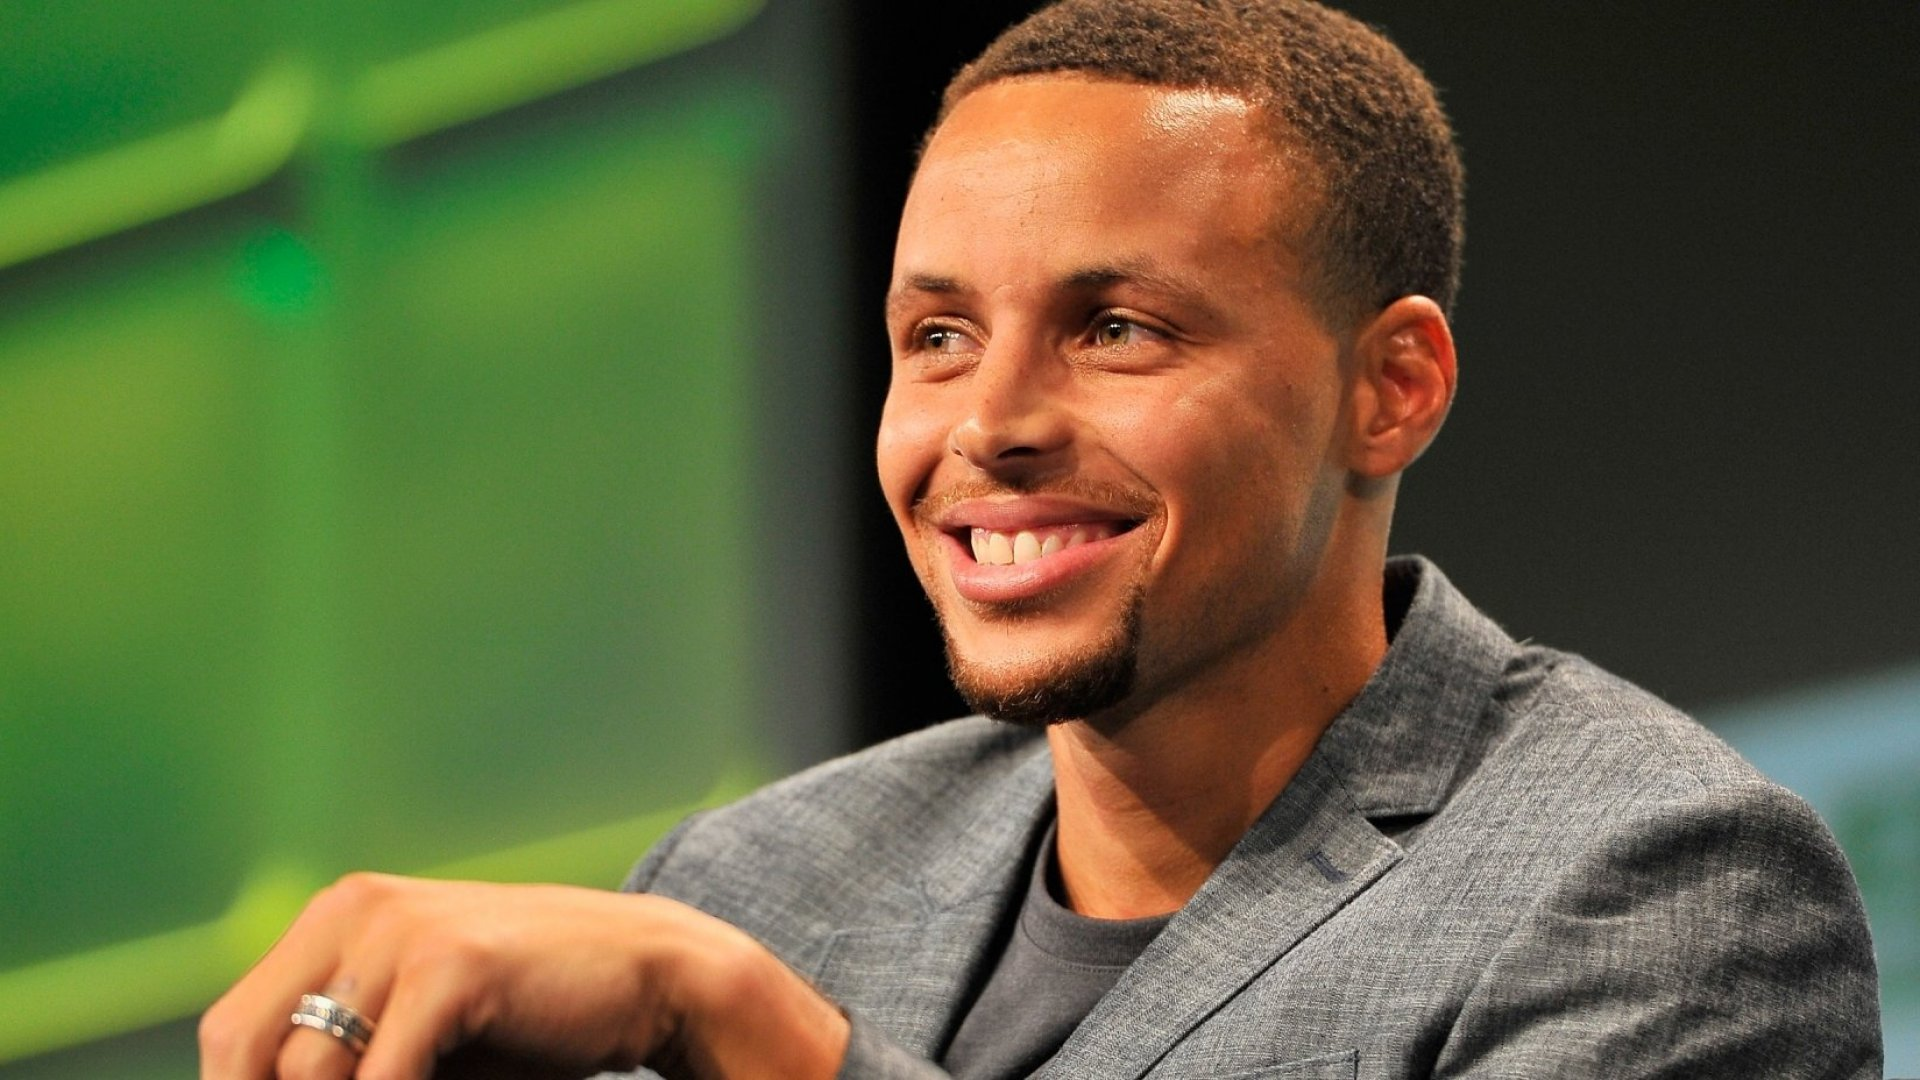 Stephen Curry, that's who consumers are buying.